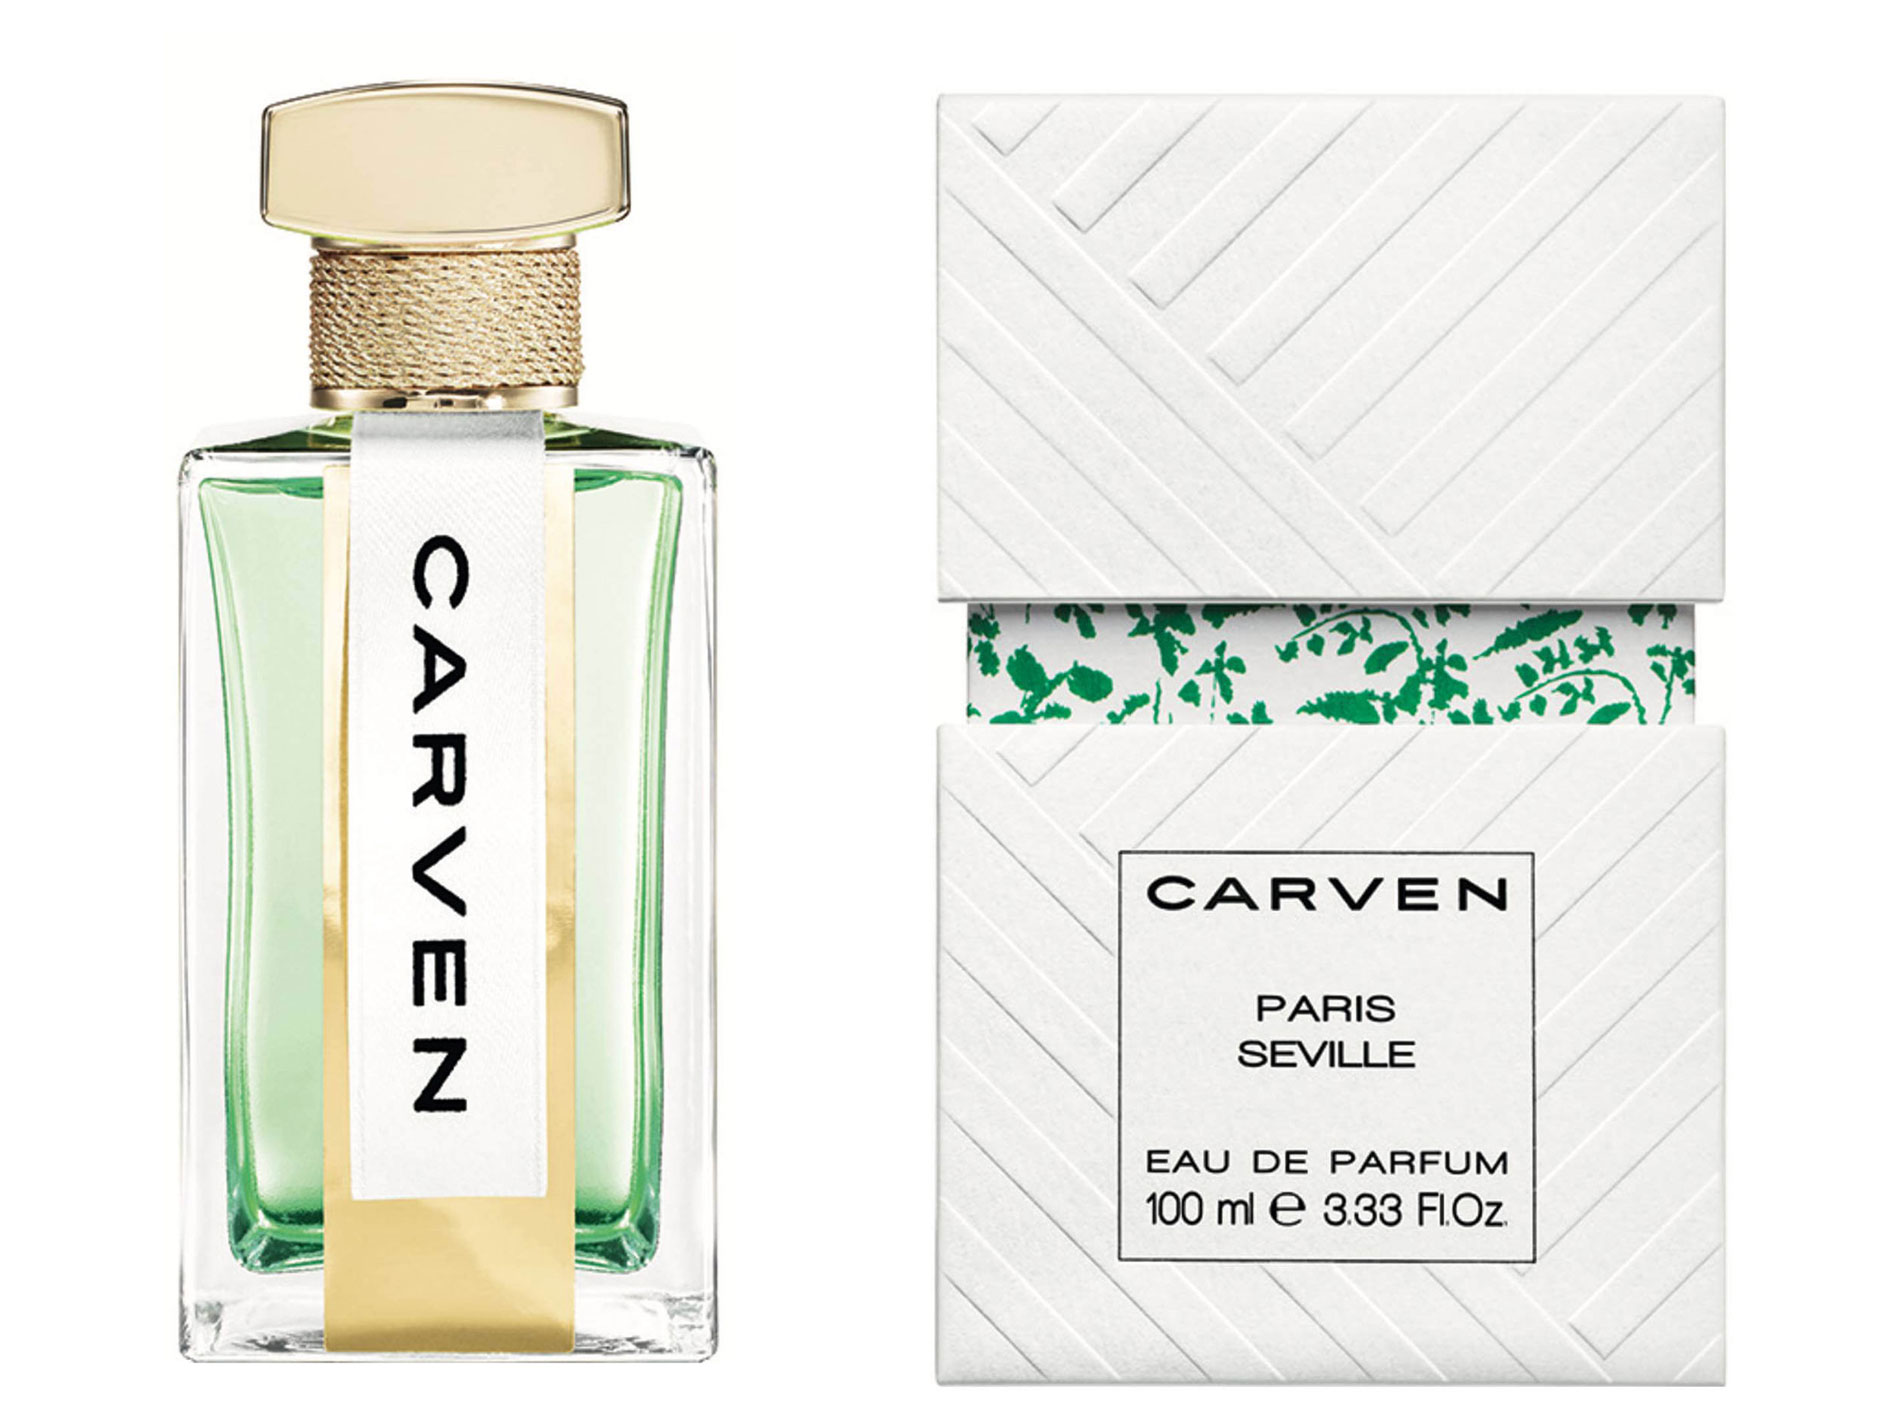 carven paris new collection new fragrances. Black Bedroom Furniture Sets. Home Design Ideas